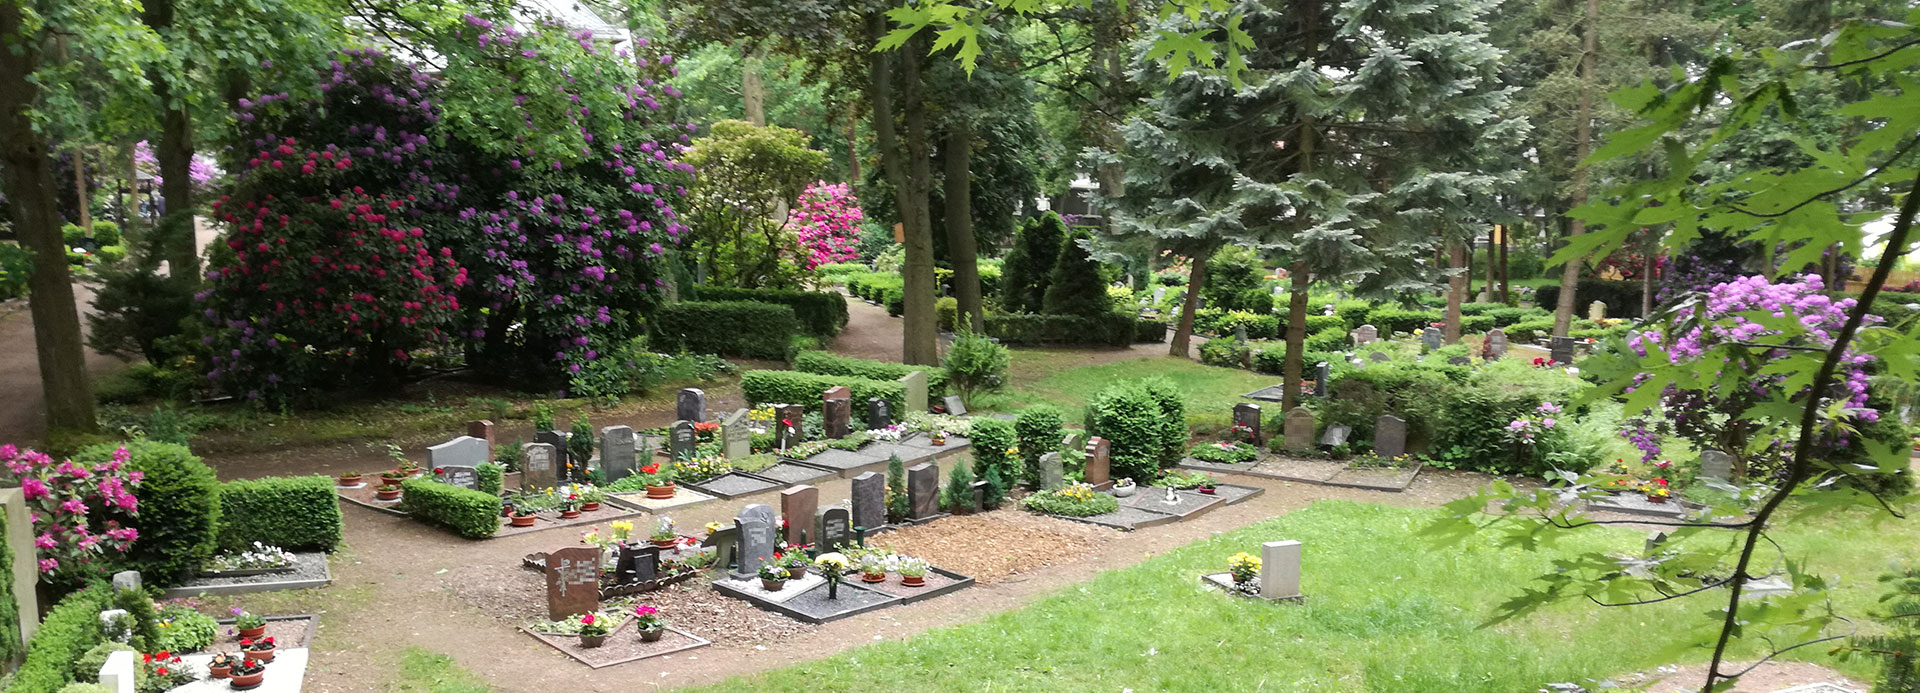 Friedhof Hartha